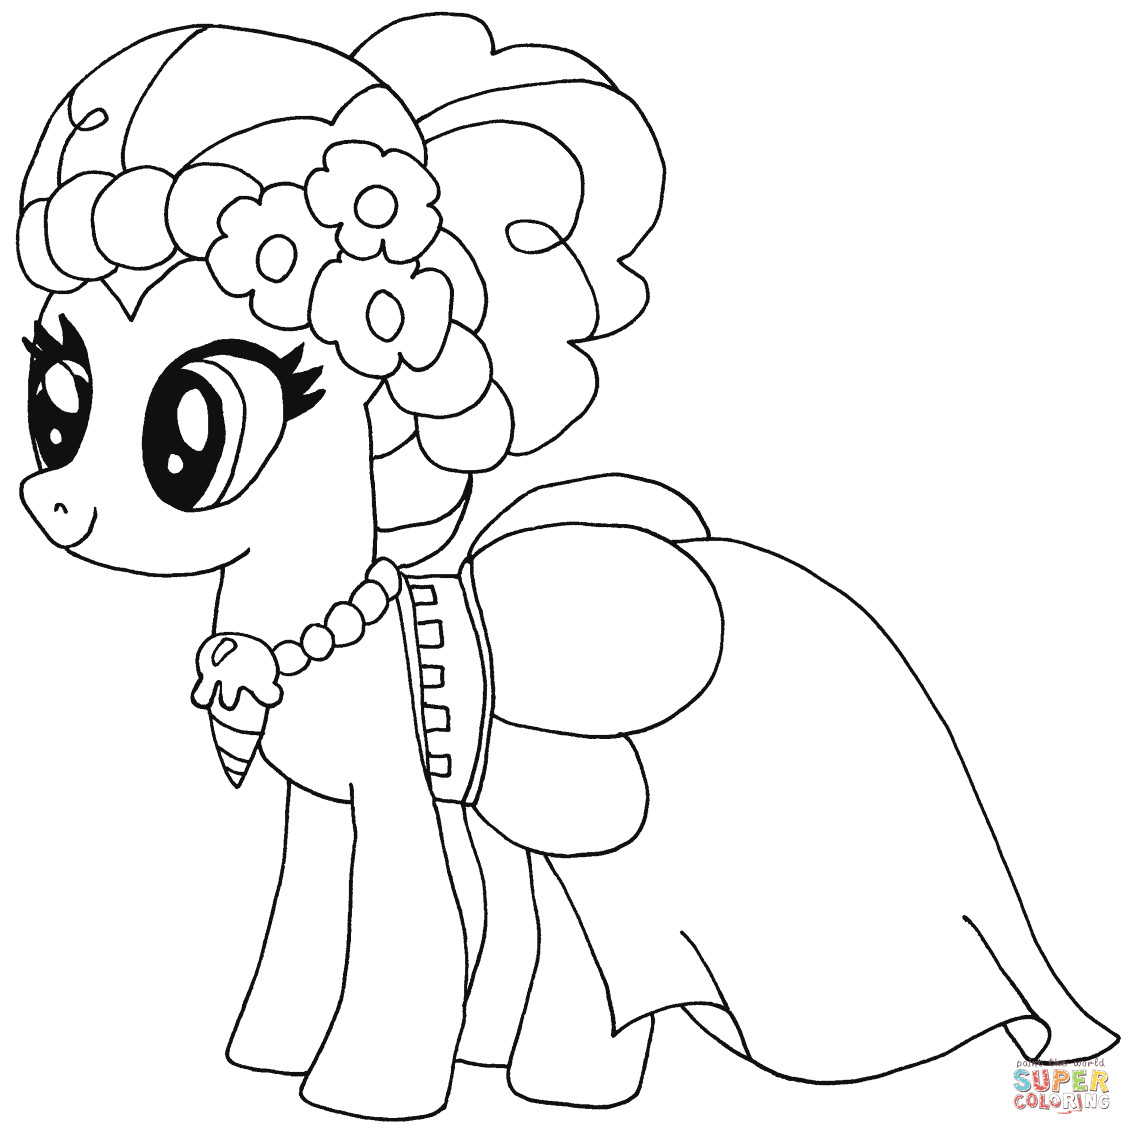 Best ideas about Pinky Pie Coloring Pages For Girls . Save or Pin Pinkie Pie from My Little Pony Coloring Page My Little Now.